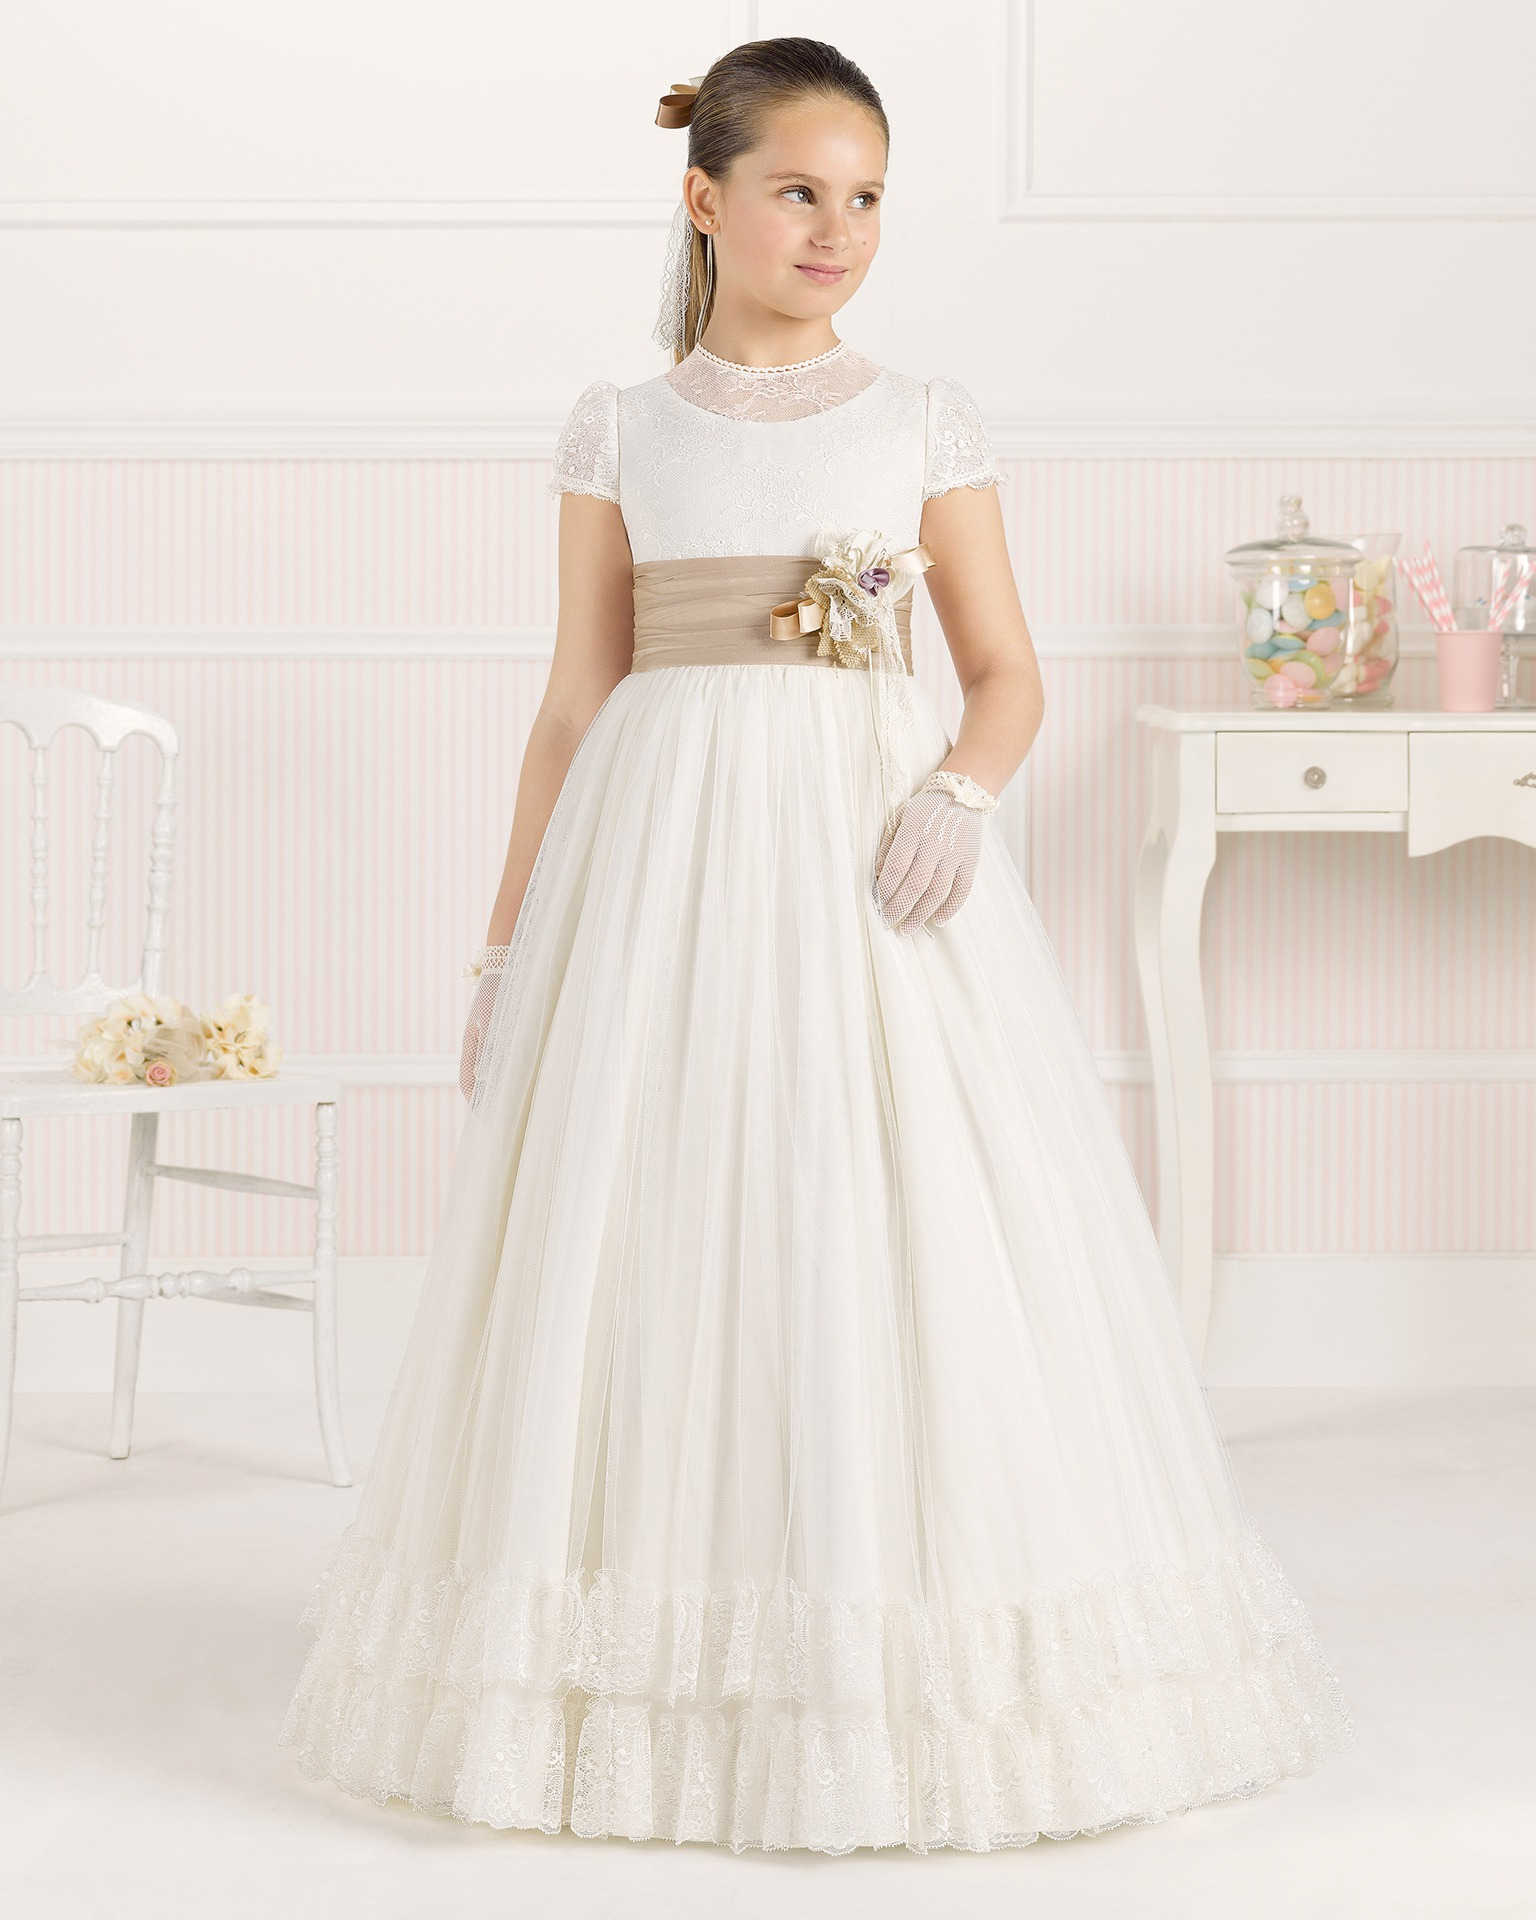 9O104 ballgown-style First Communion dress